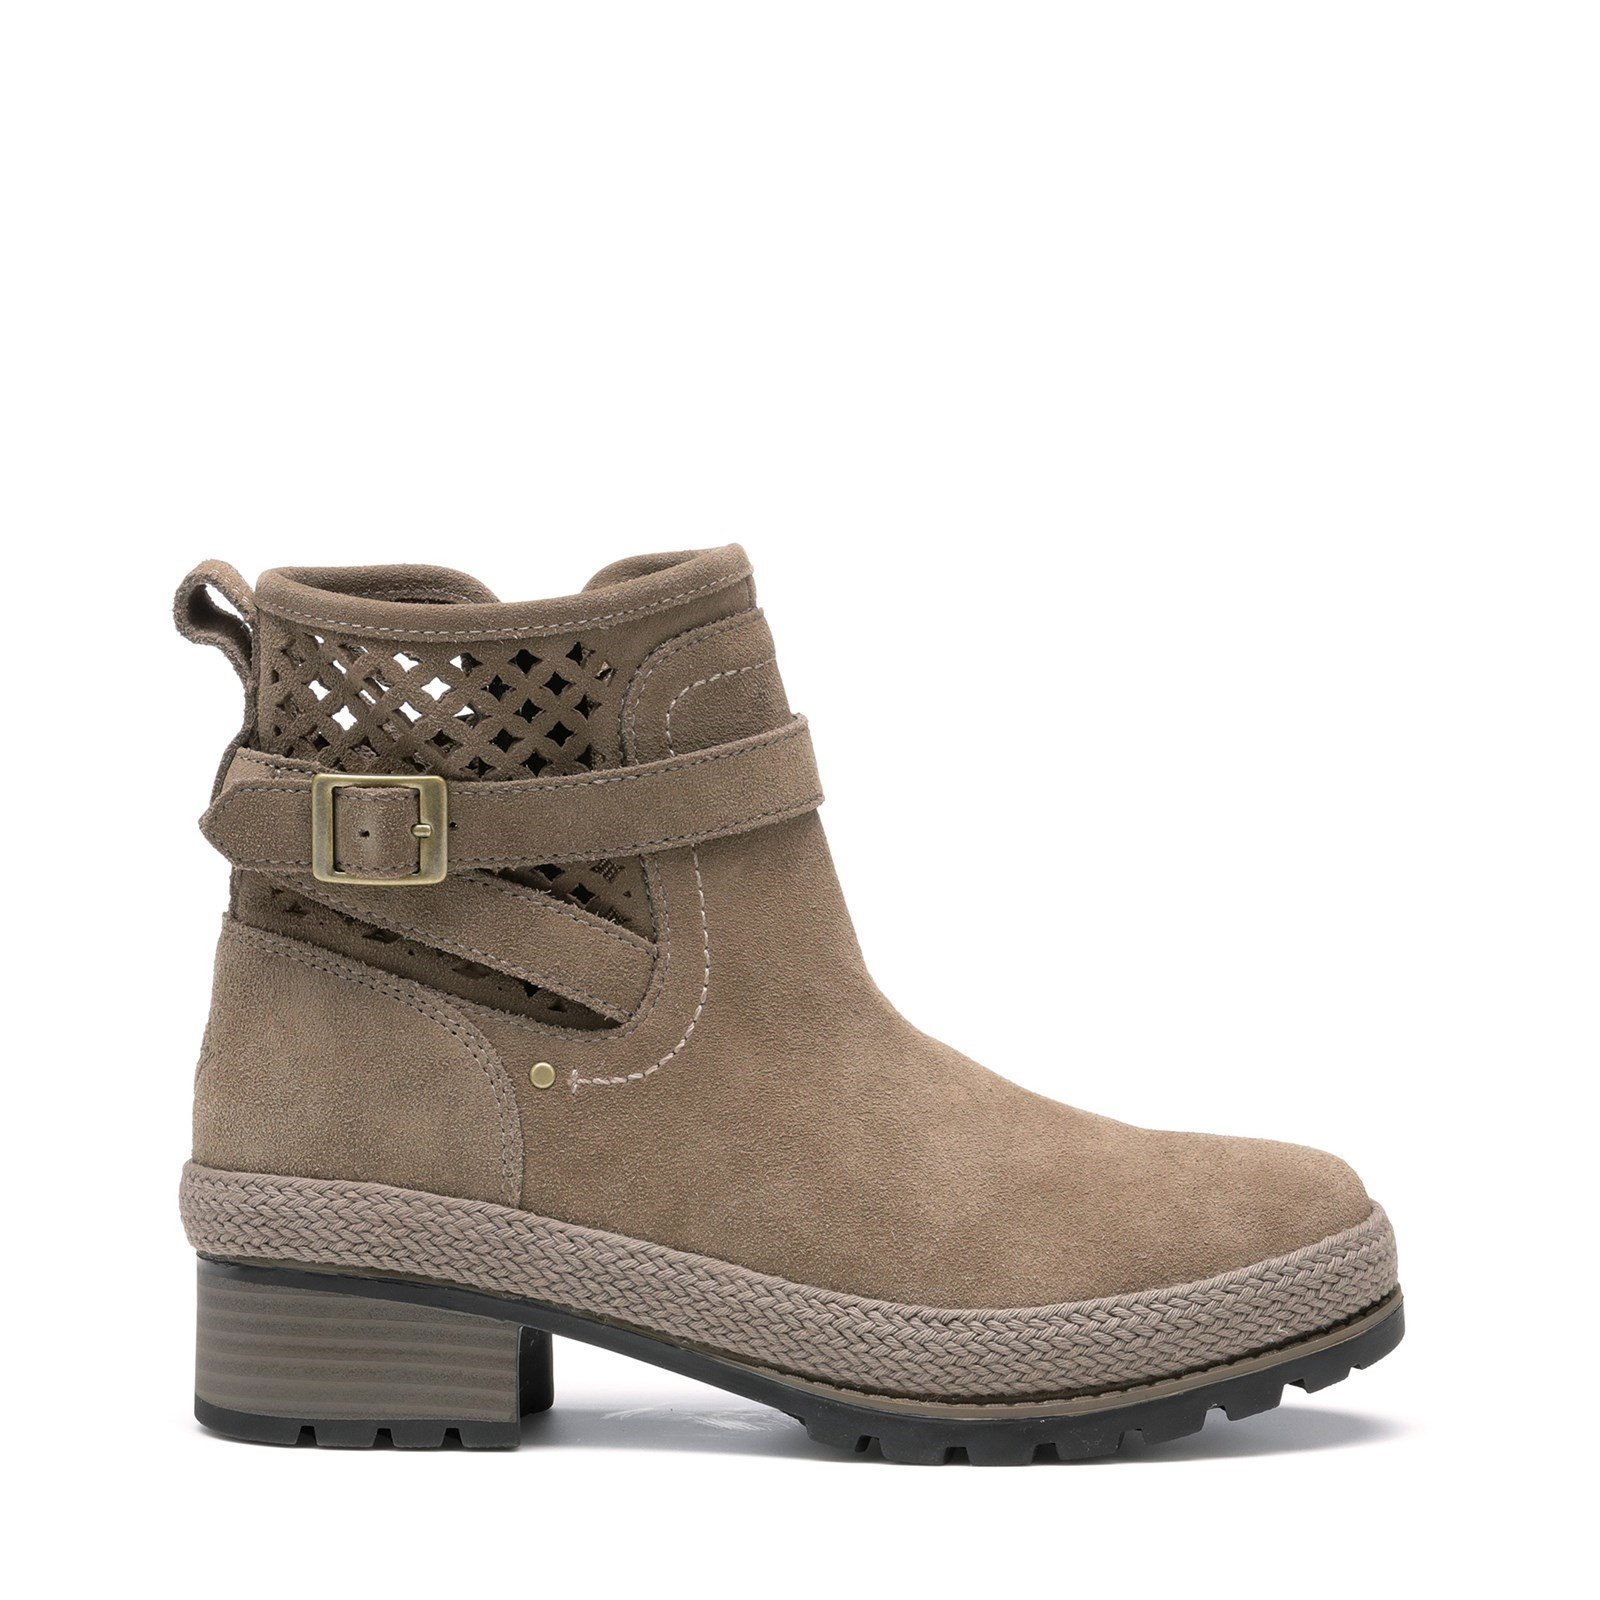 Muck Boots Women's Liberty Perforated Leather Boots Various Colours 31814 - Grey 4